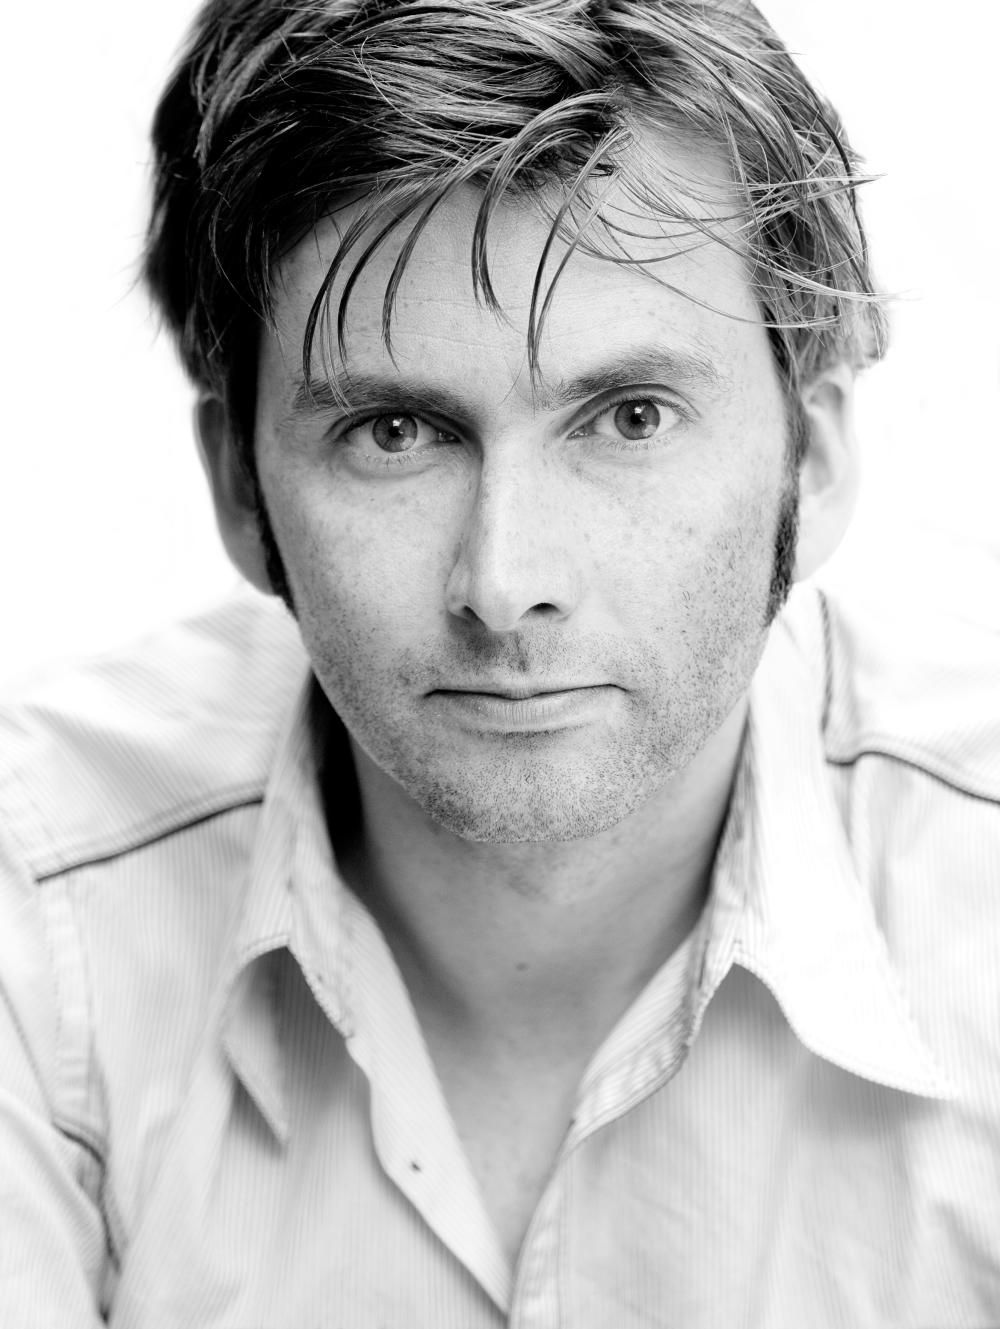 Google Image Result for http://images2.wikia.nocookie.net/__cb20100424170242/howtotrainyourdragon/images/7/71/David_Tennant.jpg